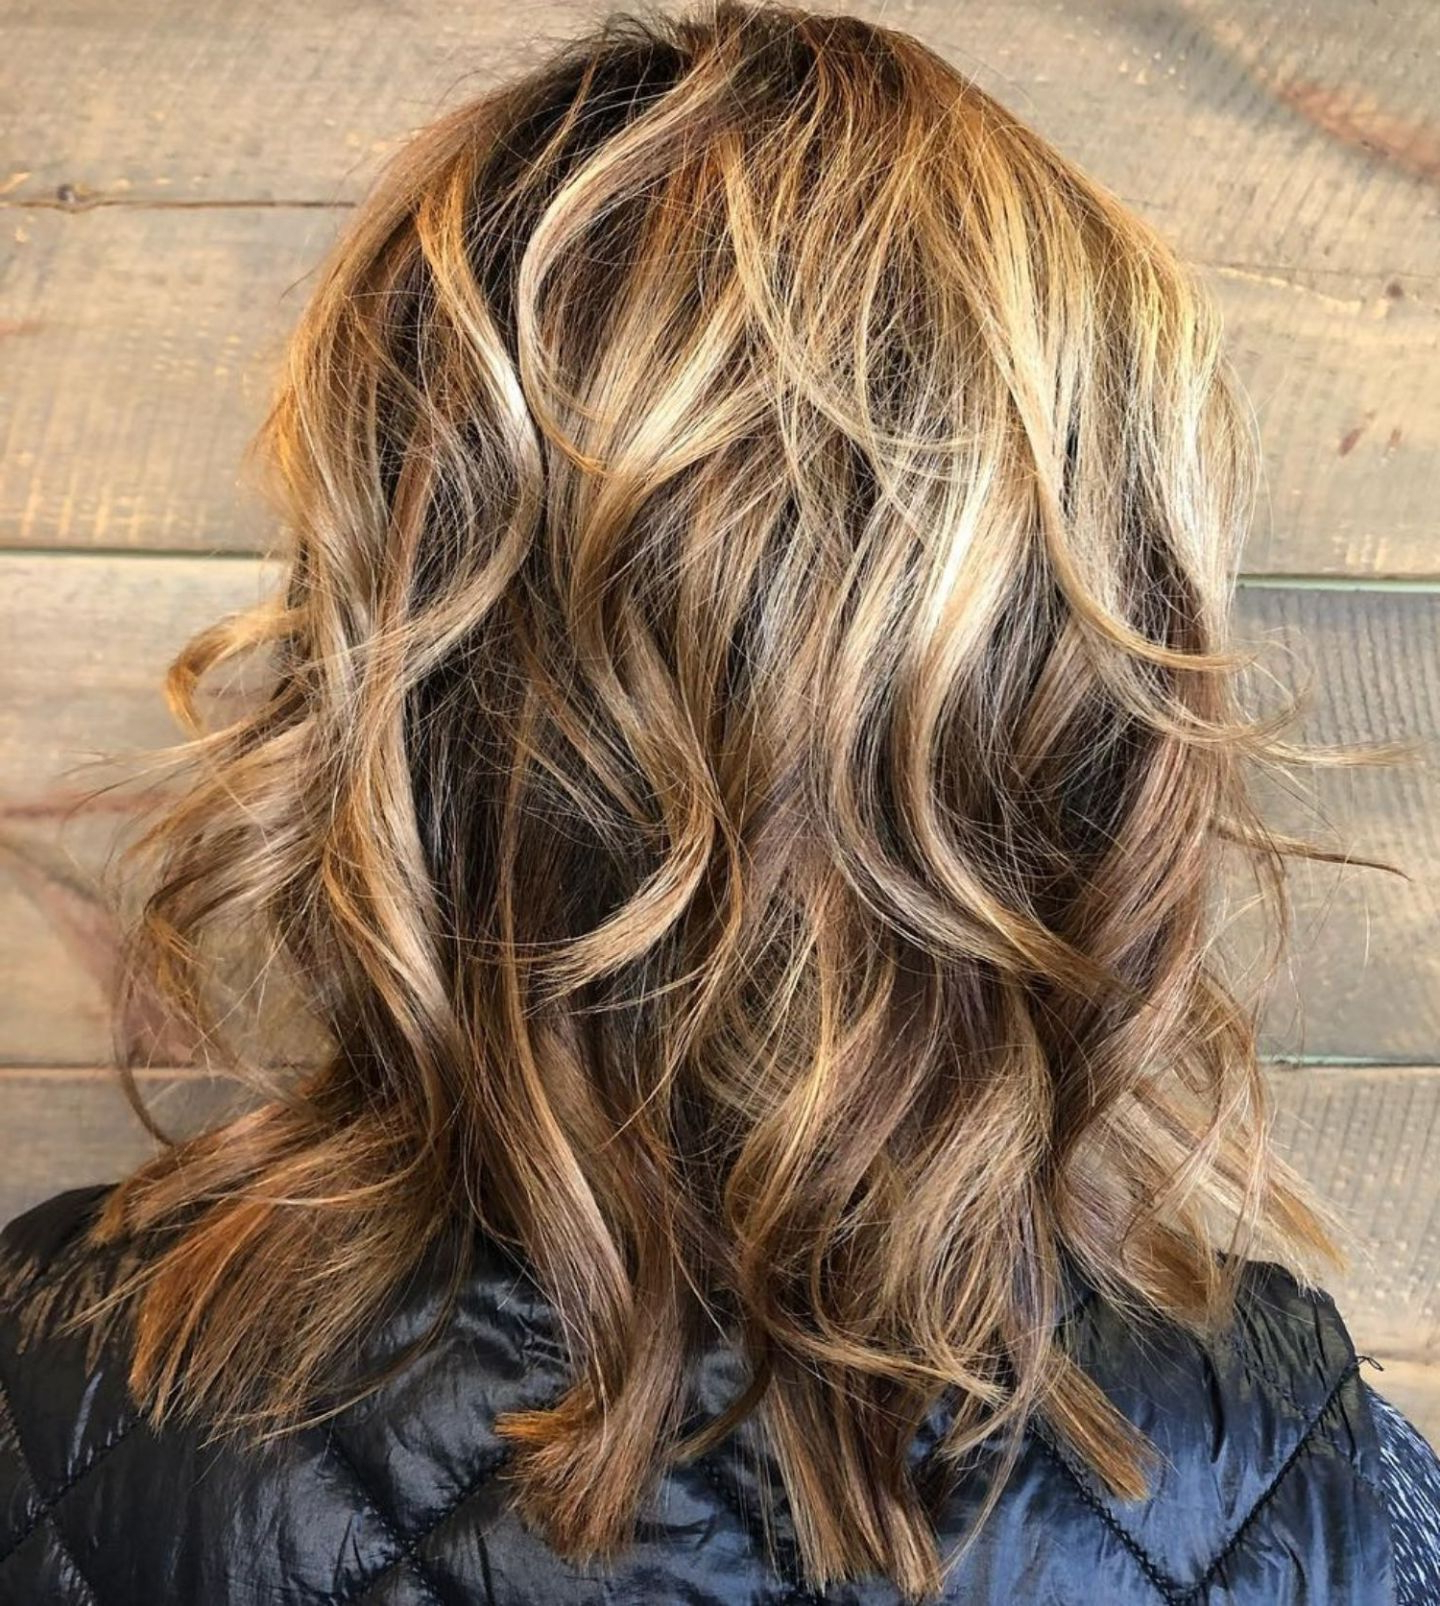 60 Best Variations Of A Medium Shag Haircut For Your In Most Recent Shiny Caramel Layers Long Shag Haircuts (View 4 of 20)